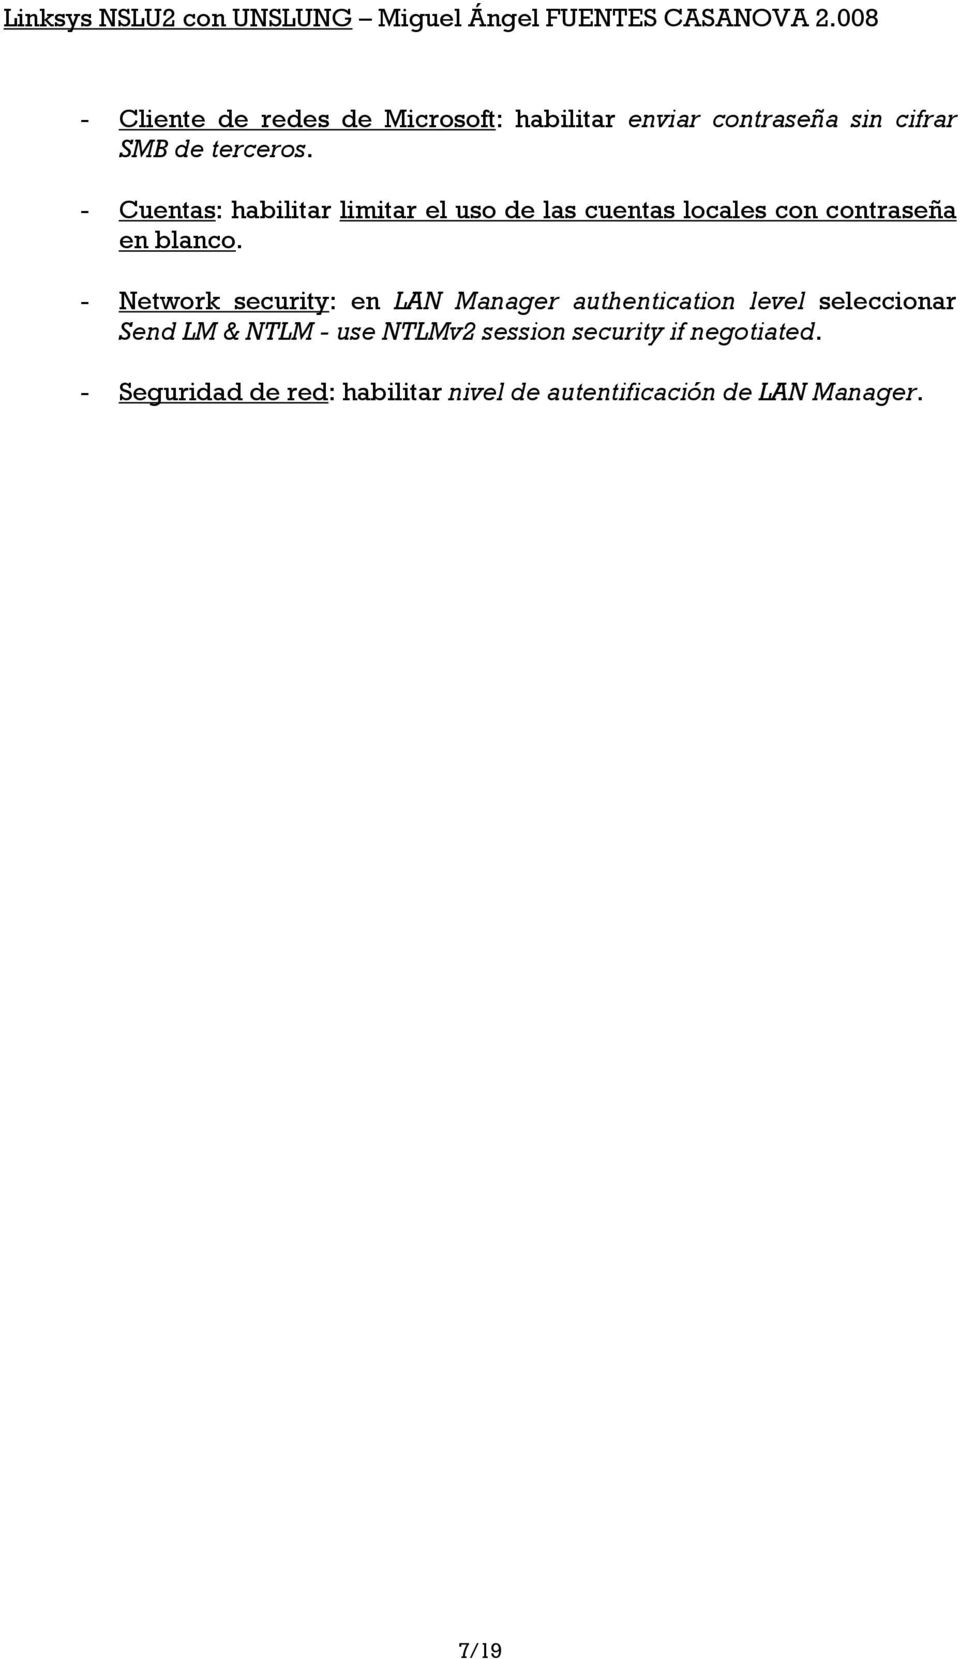 - Network security: en LAN Manager authentication level seleccionar Send LM & NTLM - use